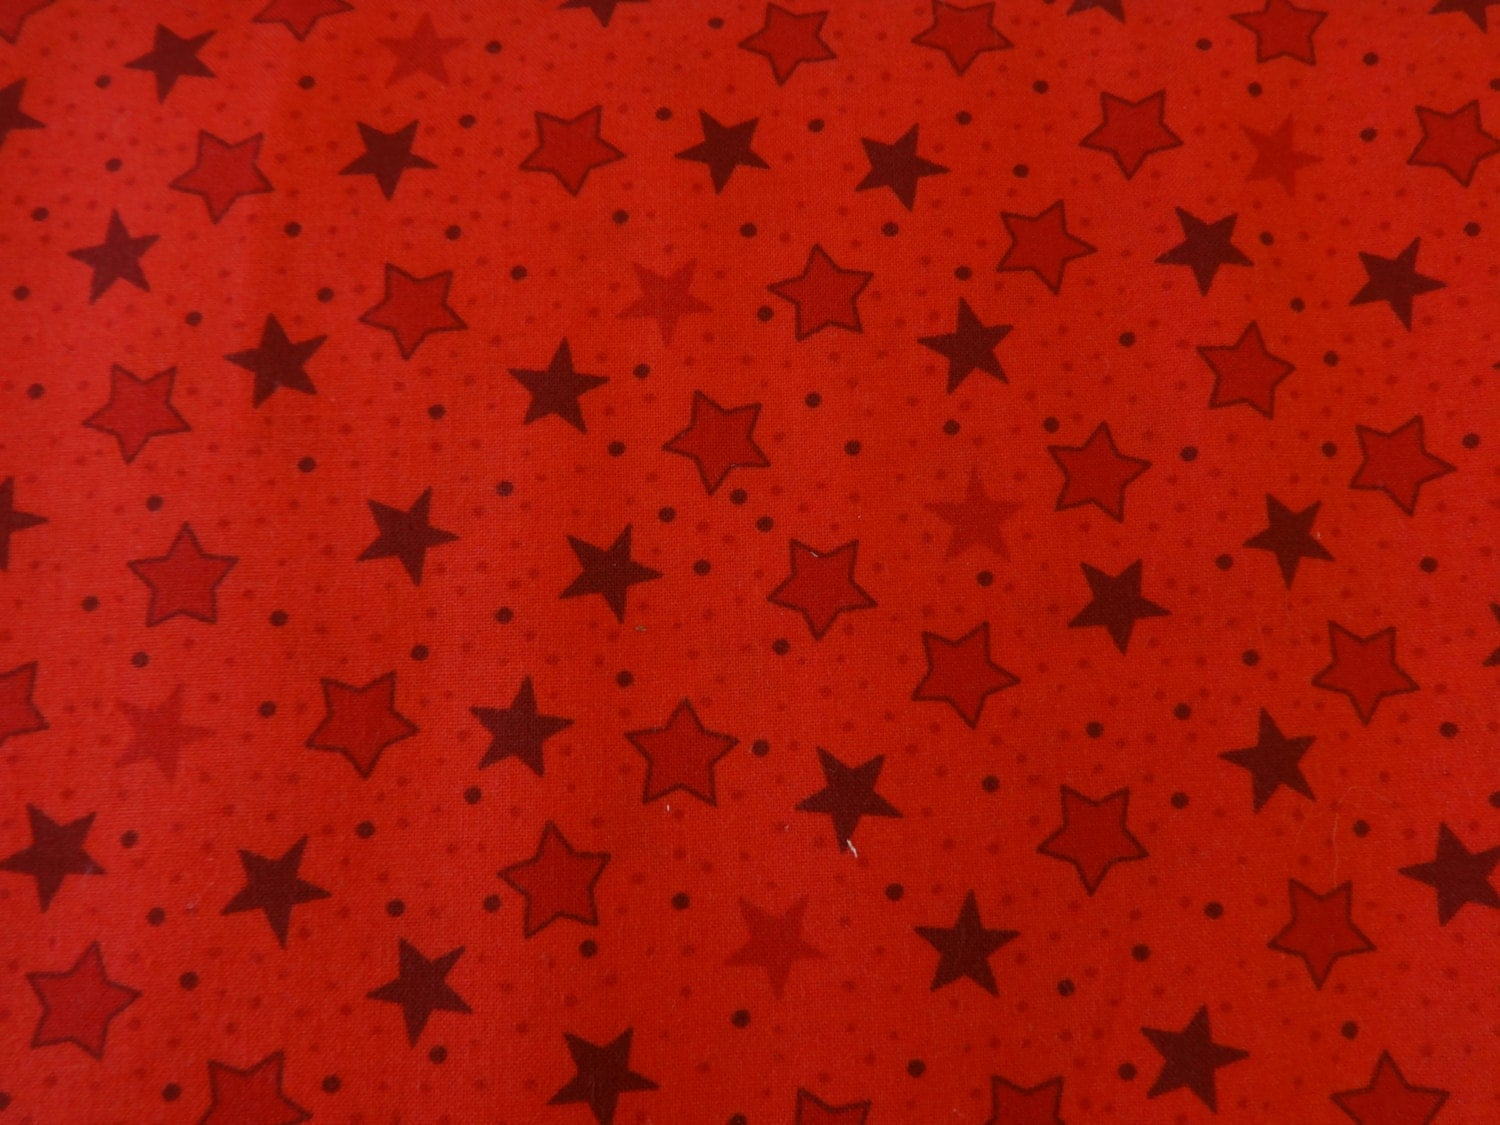 Red w red stars fabric 327 from divinesfabricnook on etsy for Star fabric australia